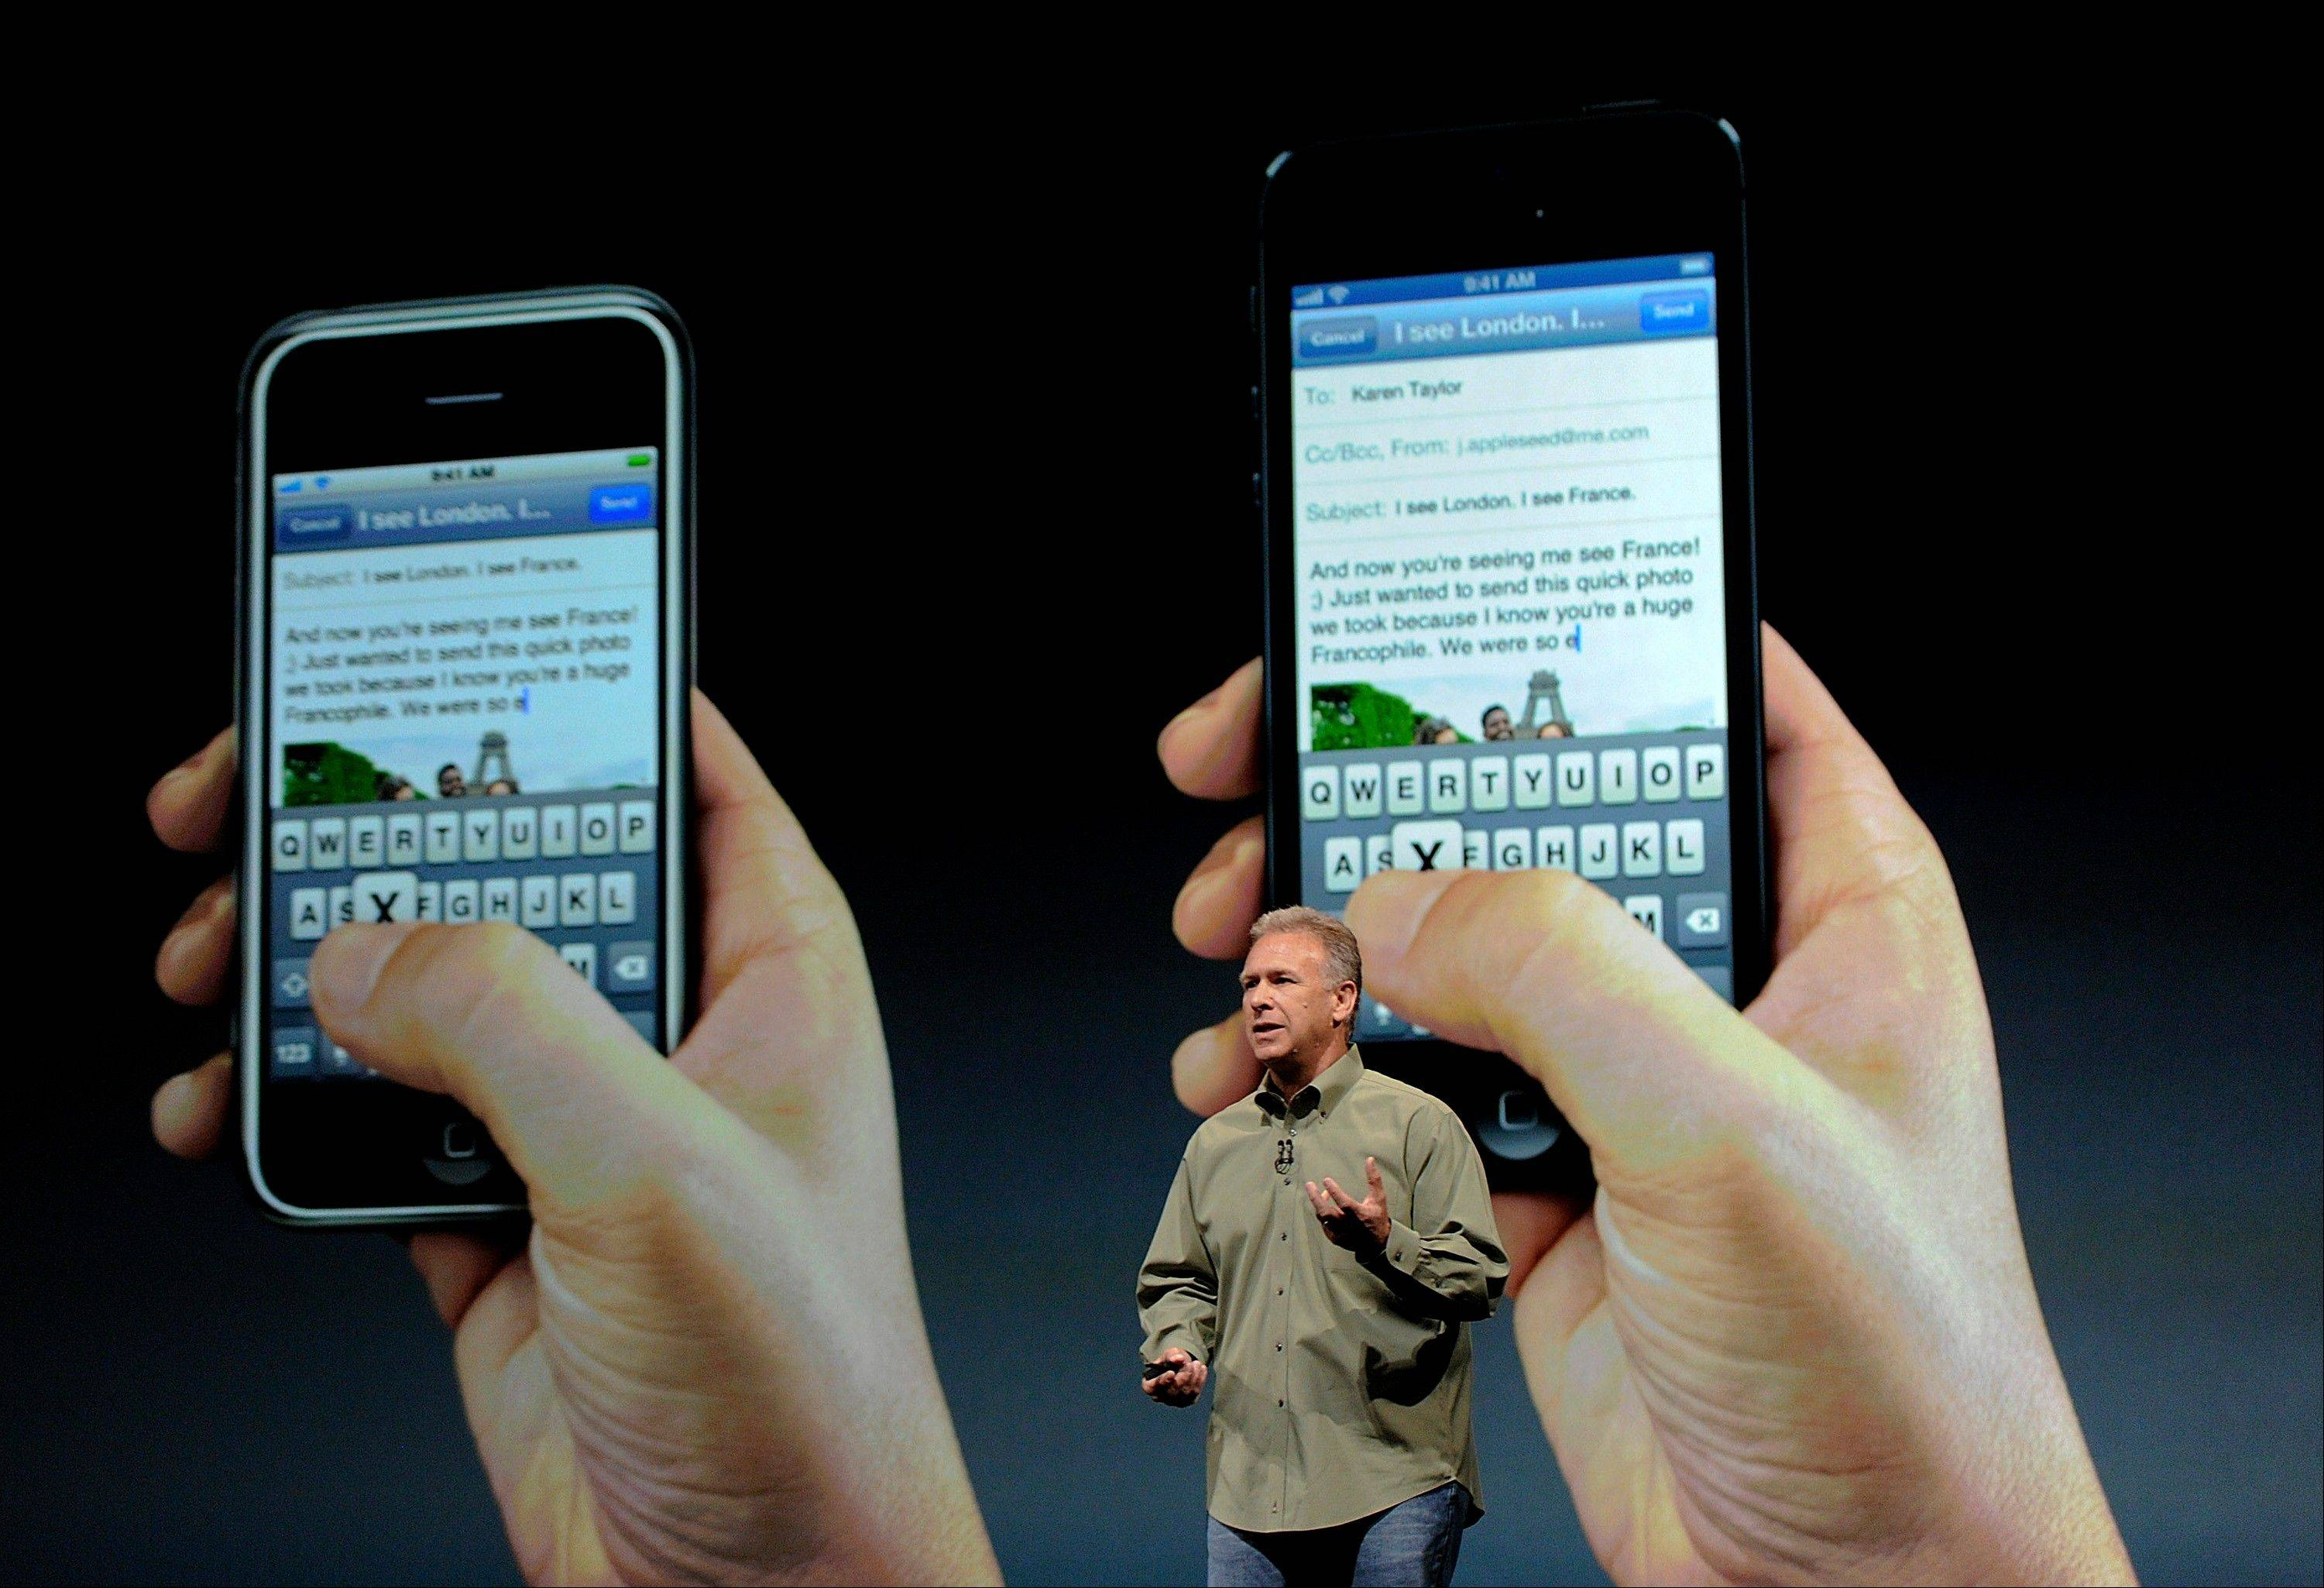 Philip �Phil� Schiller, senior vice president of worldwide marketing at Apple Inc., speaks during an event in San Francisco, California, U.S., on Wednesday, Sept. 12, 2012.